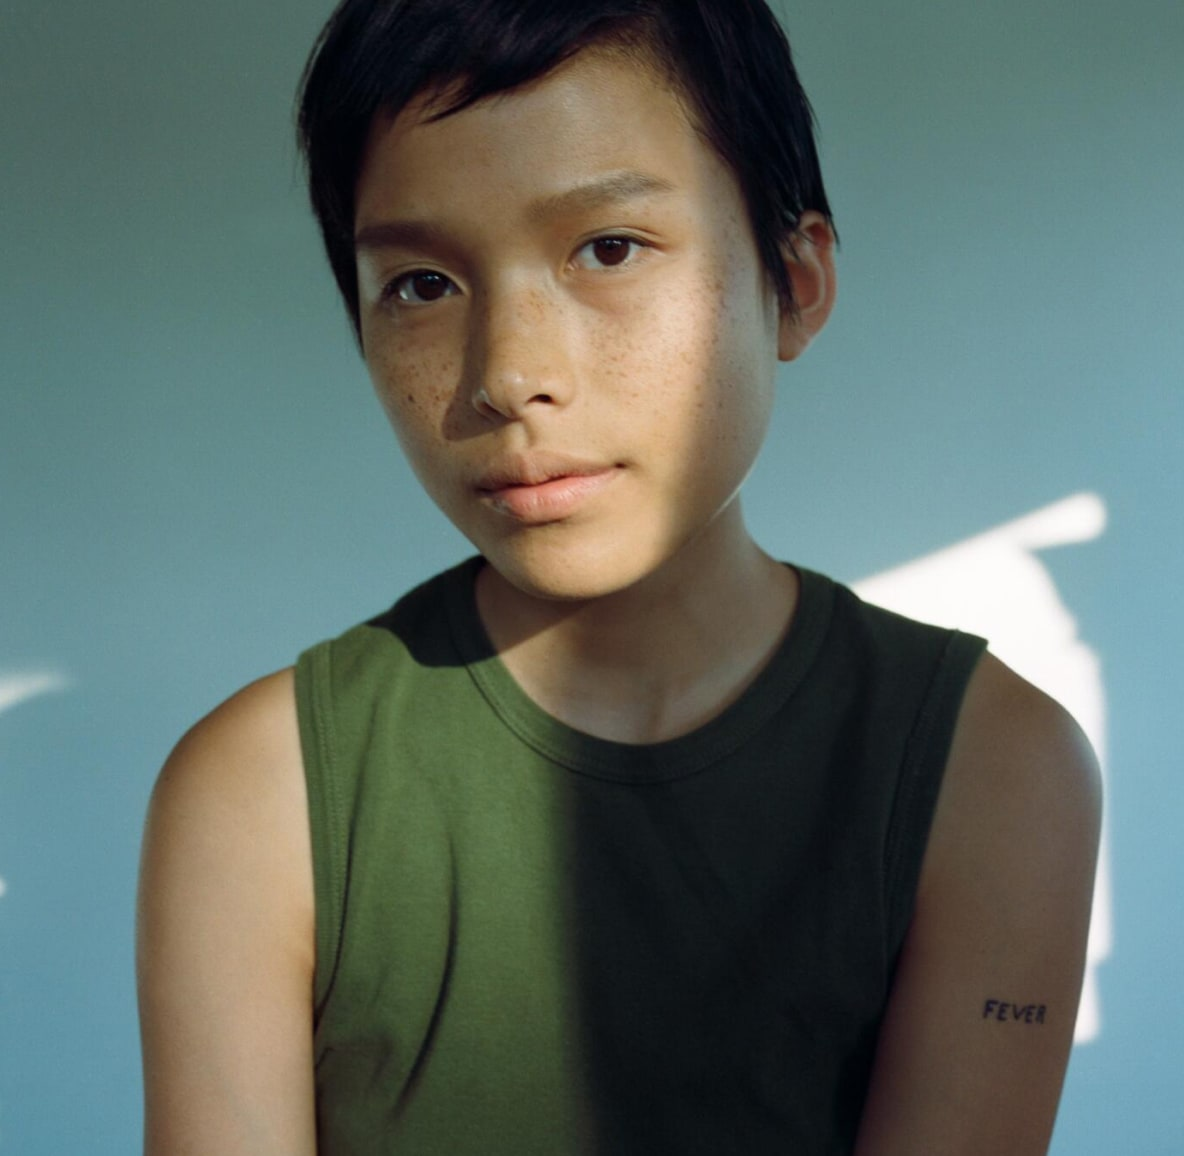 Young person with short black hair, a green tank top and no makeup